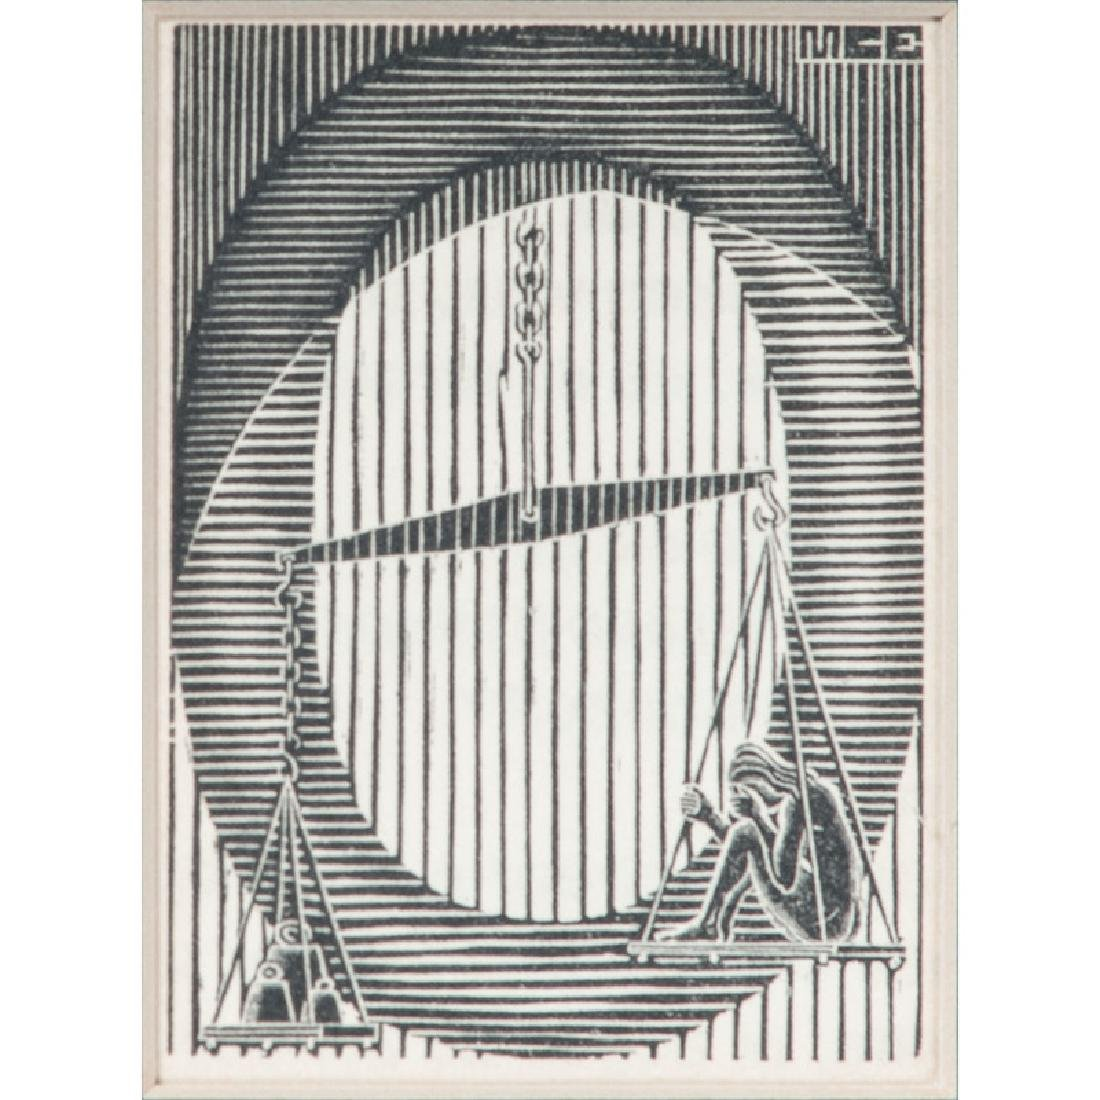 M.C. Escher Bookplate - 2